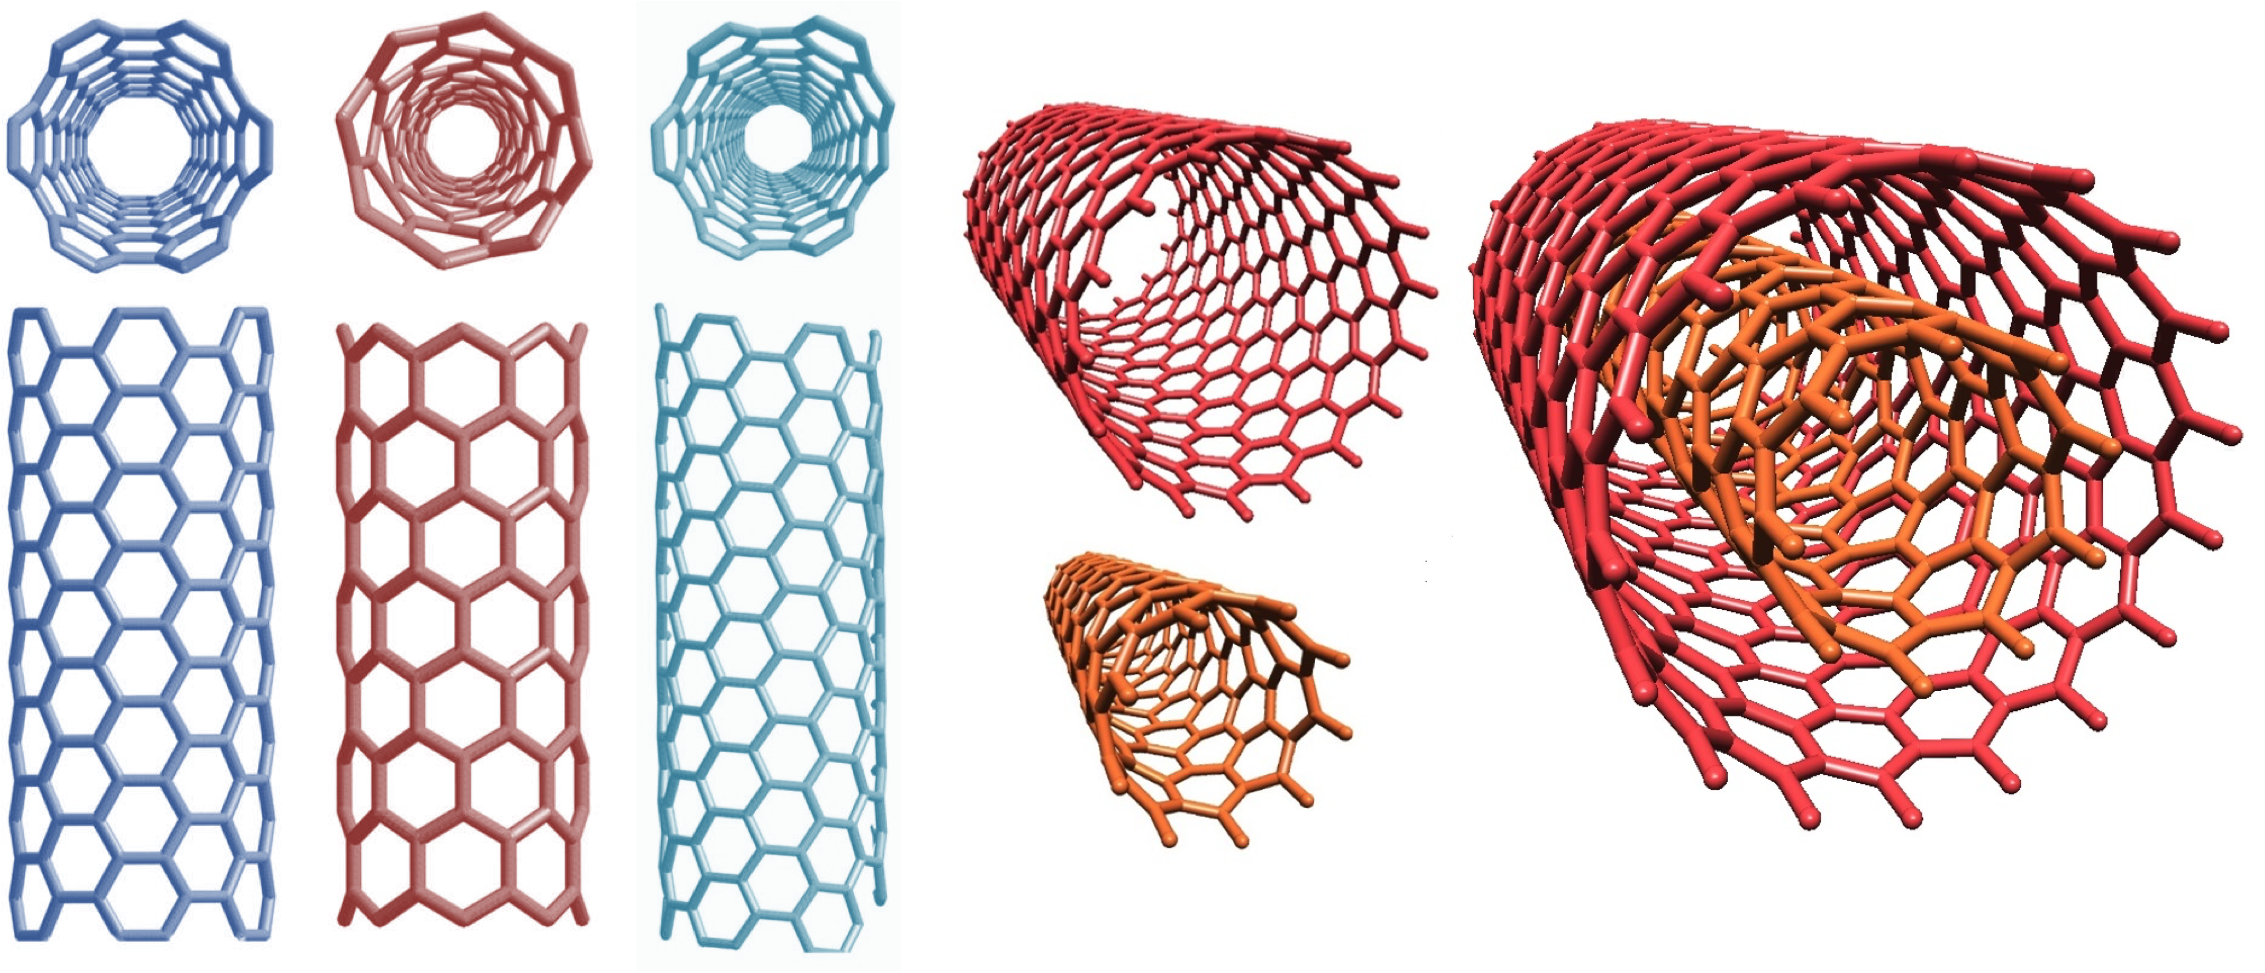 A Primer On Carbon Nanotubes Part 1 Phlebas